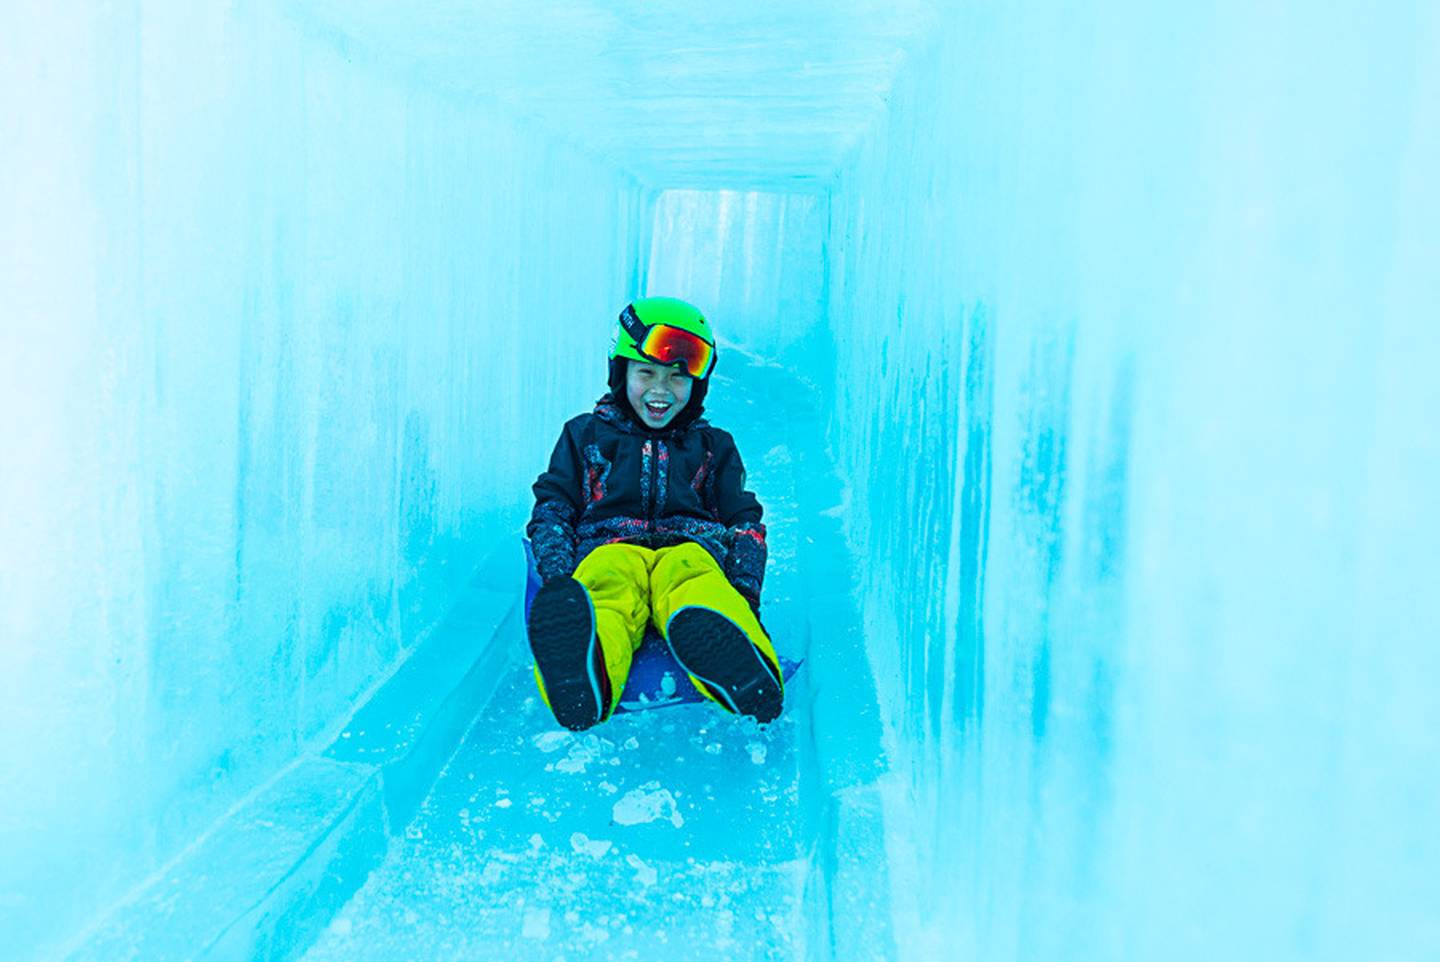 The Ice Castle features tunnel slides, turrets, peep holes and a large throne. Photo: Coronet Peak